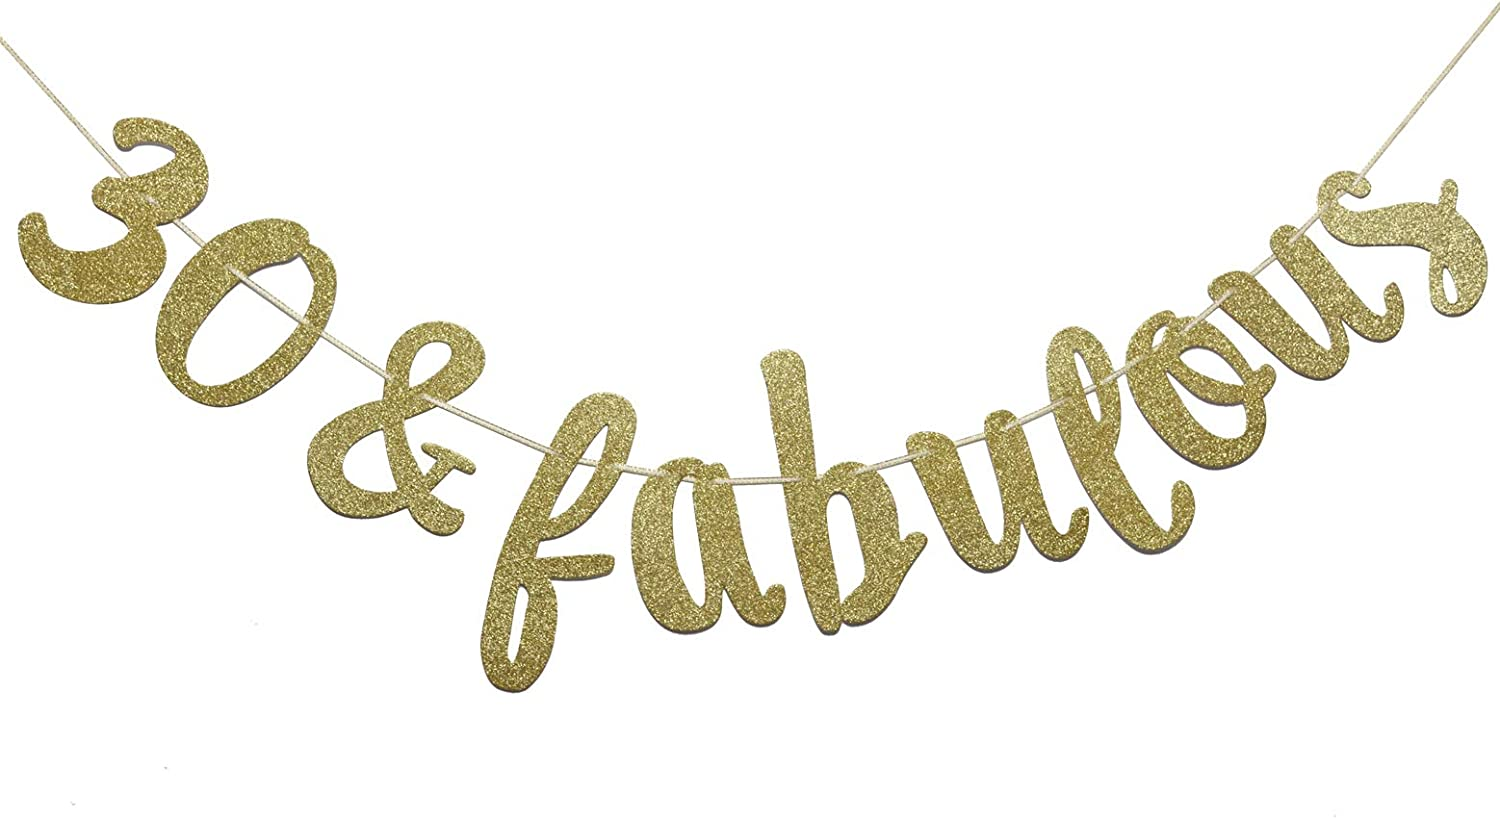 Firefairy 30 & Fabulous Cursive Banner- Happy 30tht Birthday Anniversary Party Supplies, Ideas and Decorations(Gold)